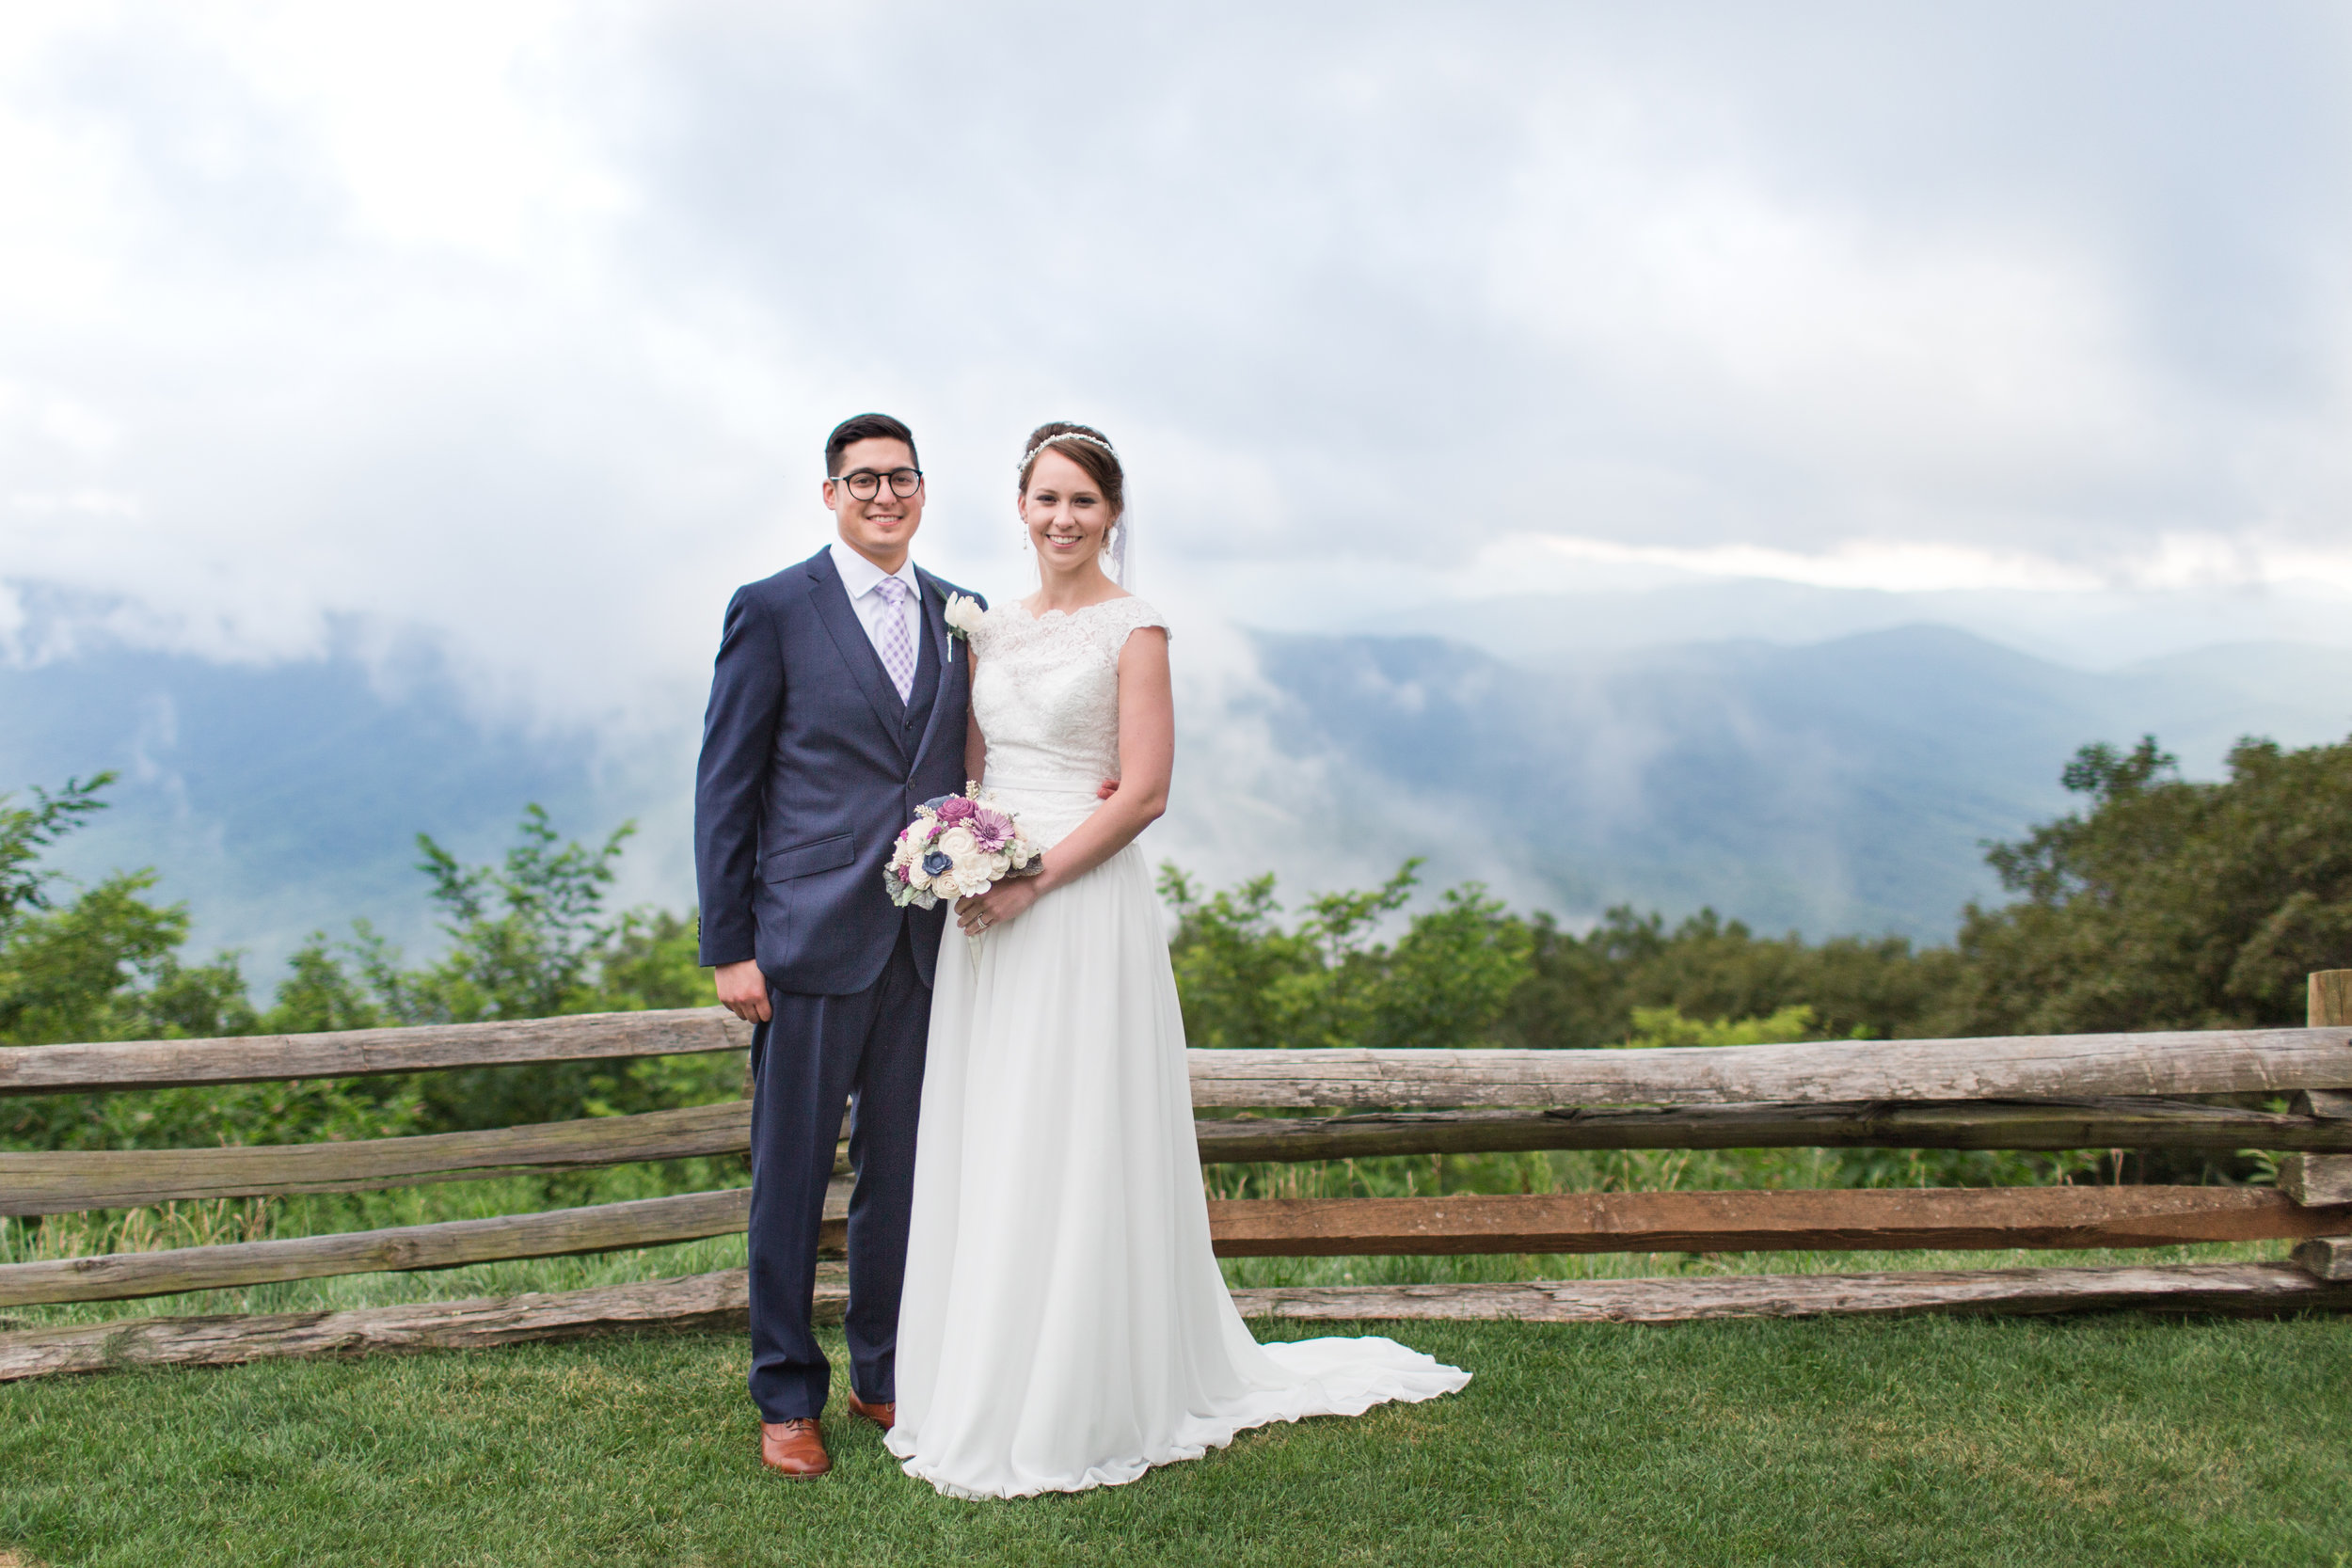 Summer Wintergreen Resort Wedding in Central Virginia || Lynchburg, VA Wedding Photographer